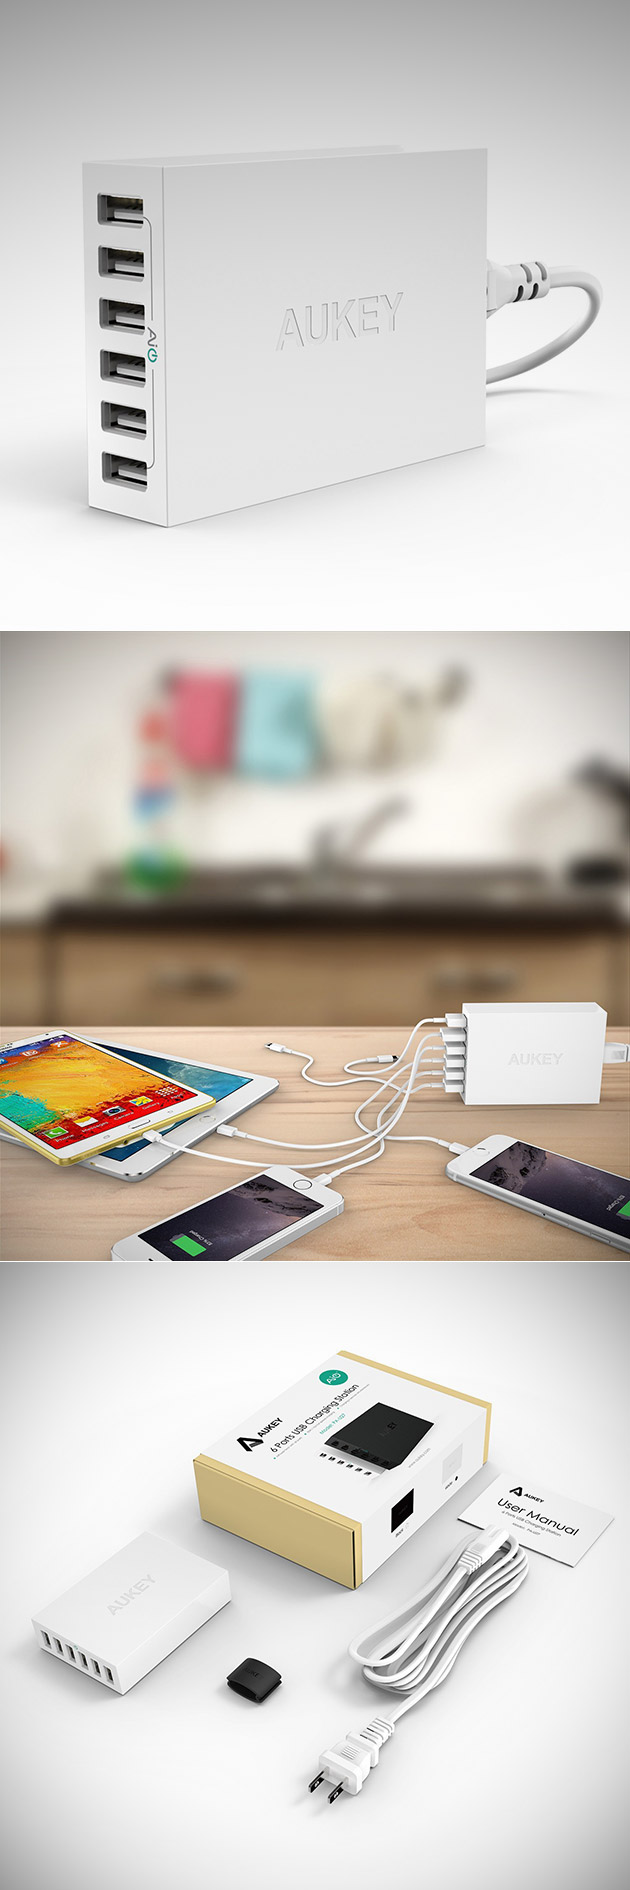 Aukey 6-Port USB Wall Charger